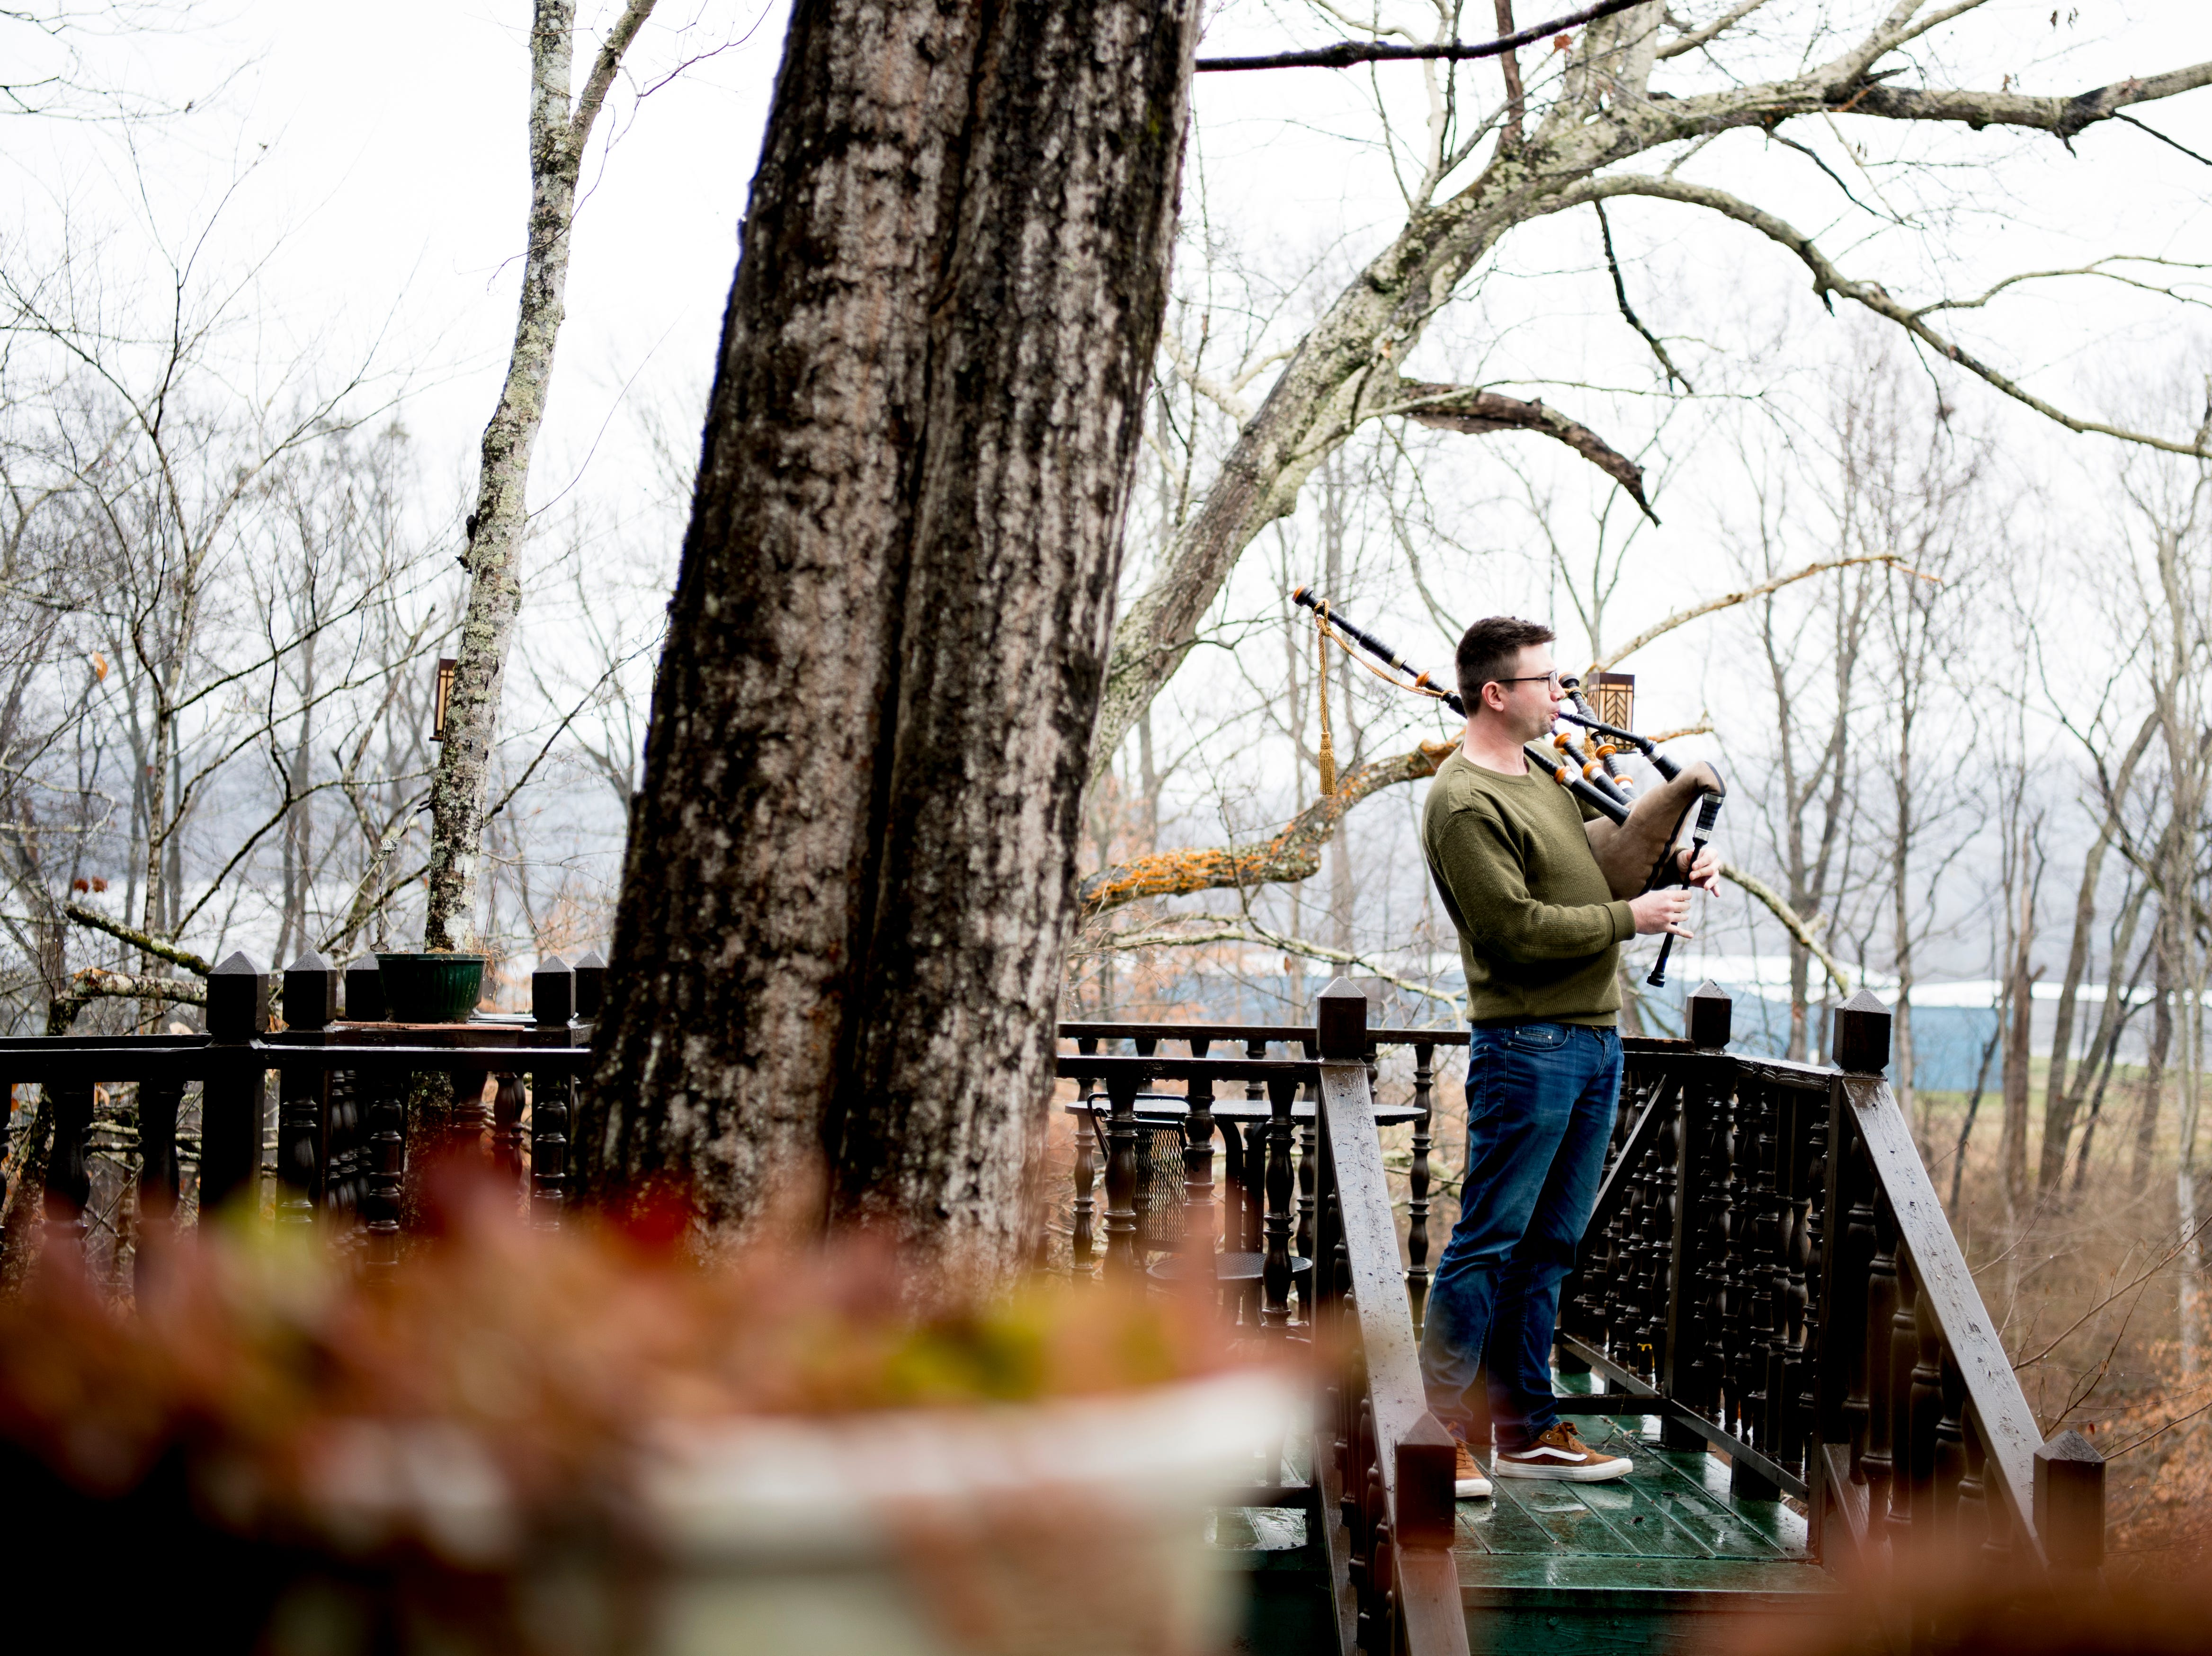 Tyler Roy practices his bagpipe on the back porch of Williamswood Castle in South Knoxville, Tennessee on Thursday, January 17, 2019. The home, modeled after a medieval castle, was built by Julia Tucker in 1991 and took 6 years to complete. Many of the items in the home were sourced from around the Knoxville area.